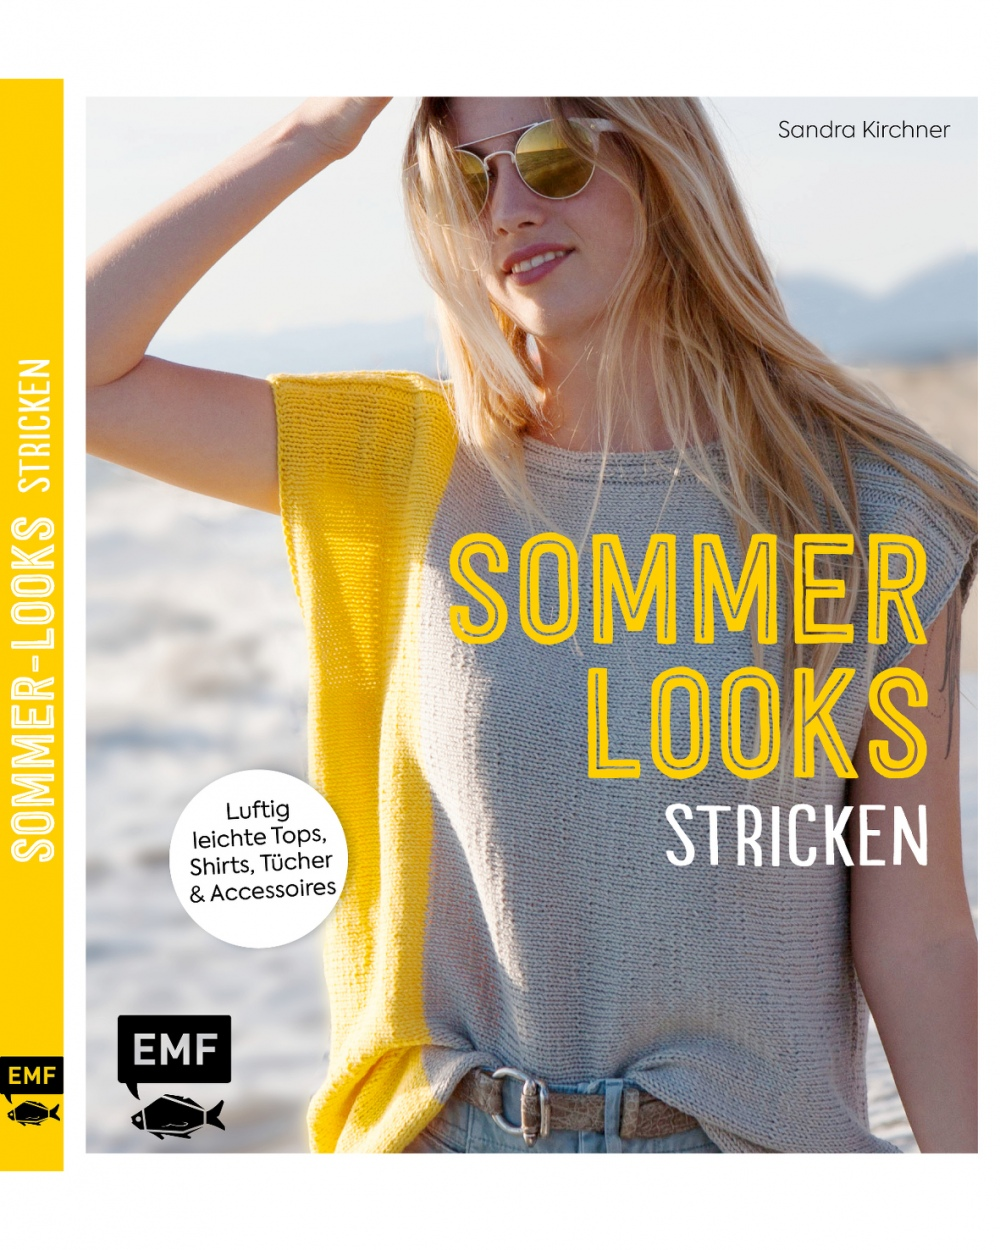 Buch - Sommerlooks Stricken